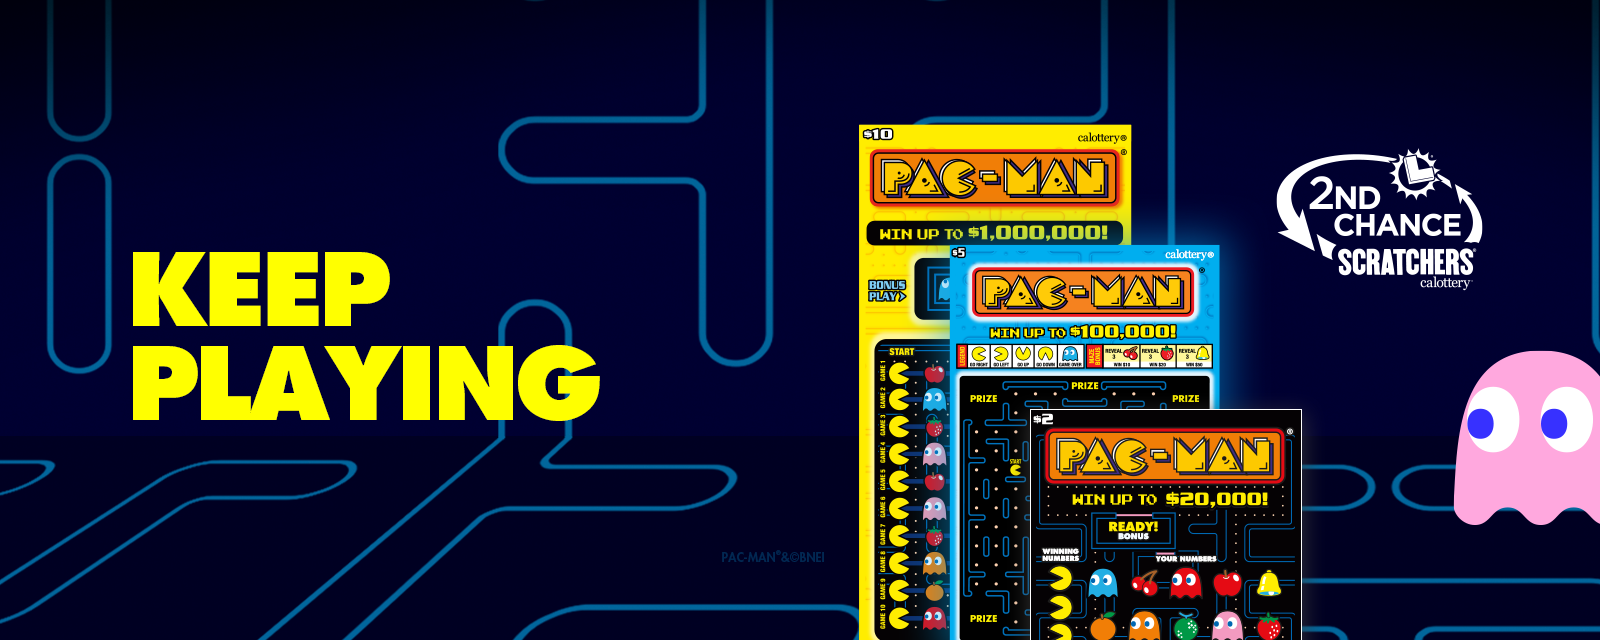 PAC-MAN Scratchers 2nd Chance Last Chance